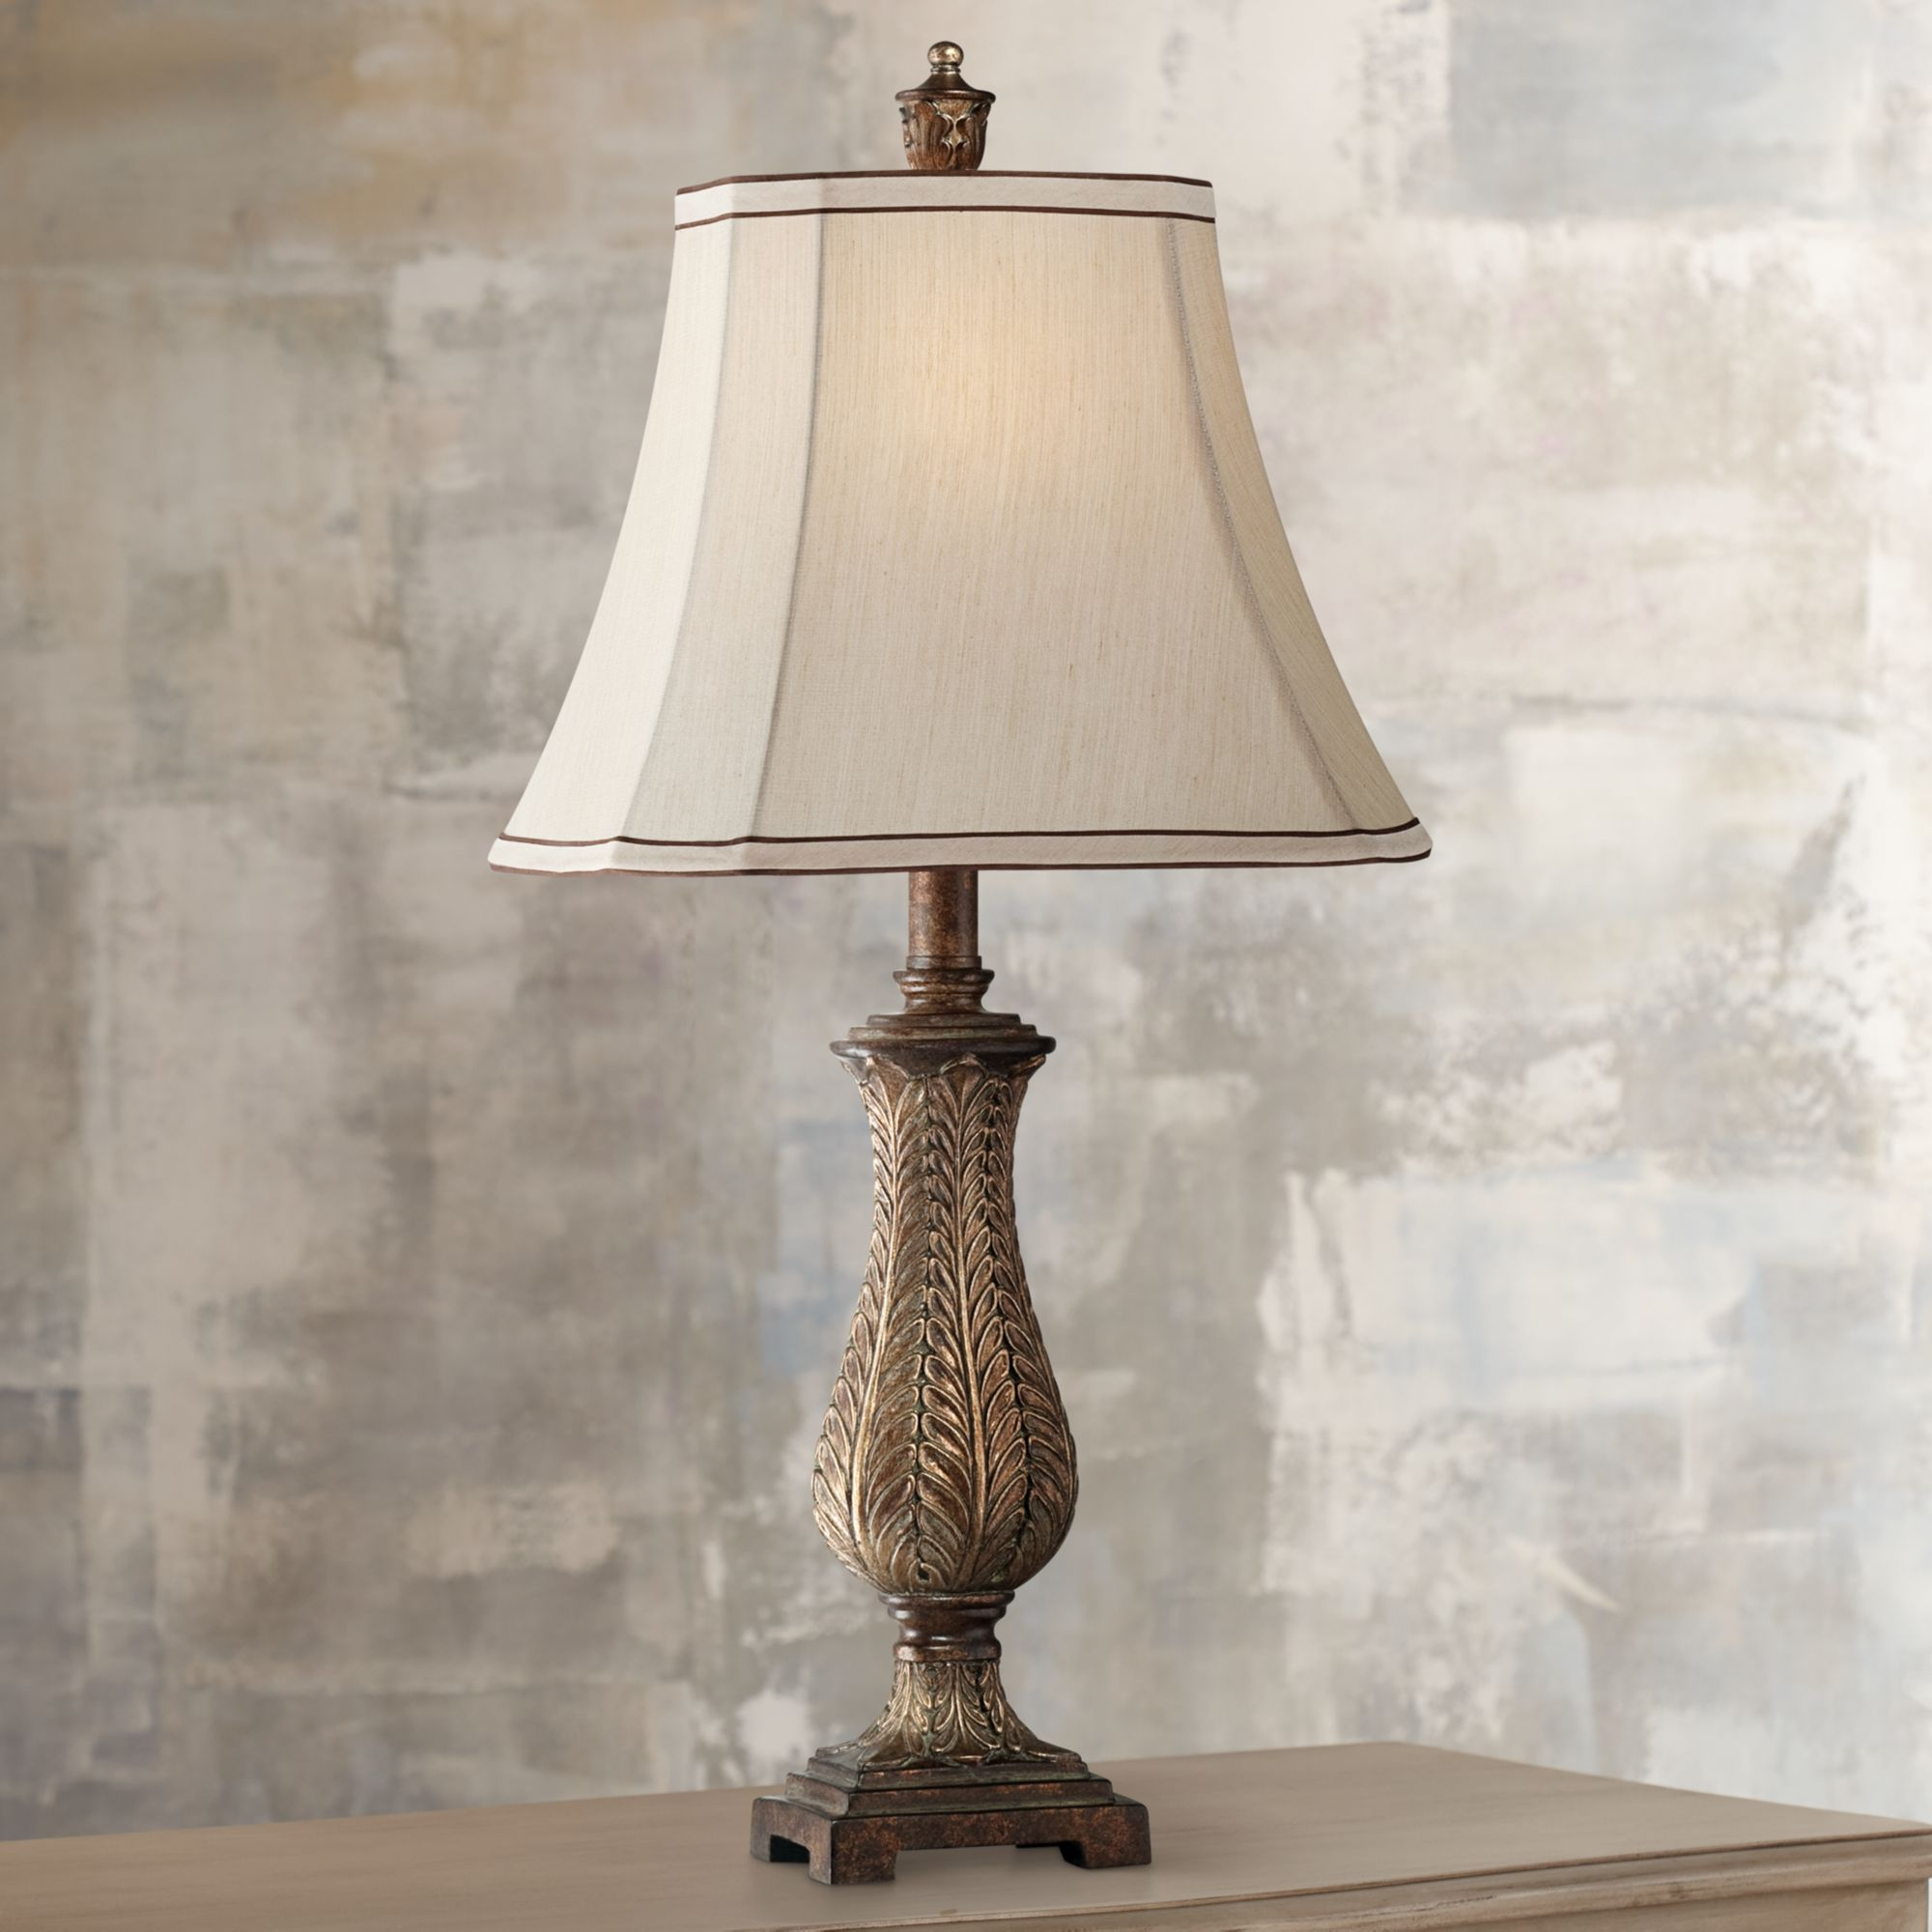 Regency Hill Traditional Table Lamp Old Oak Antique Petite Vase Beige Rectangular Shade for Living Room Family Bedroom Bedside